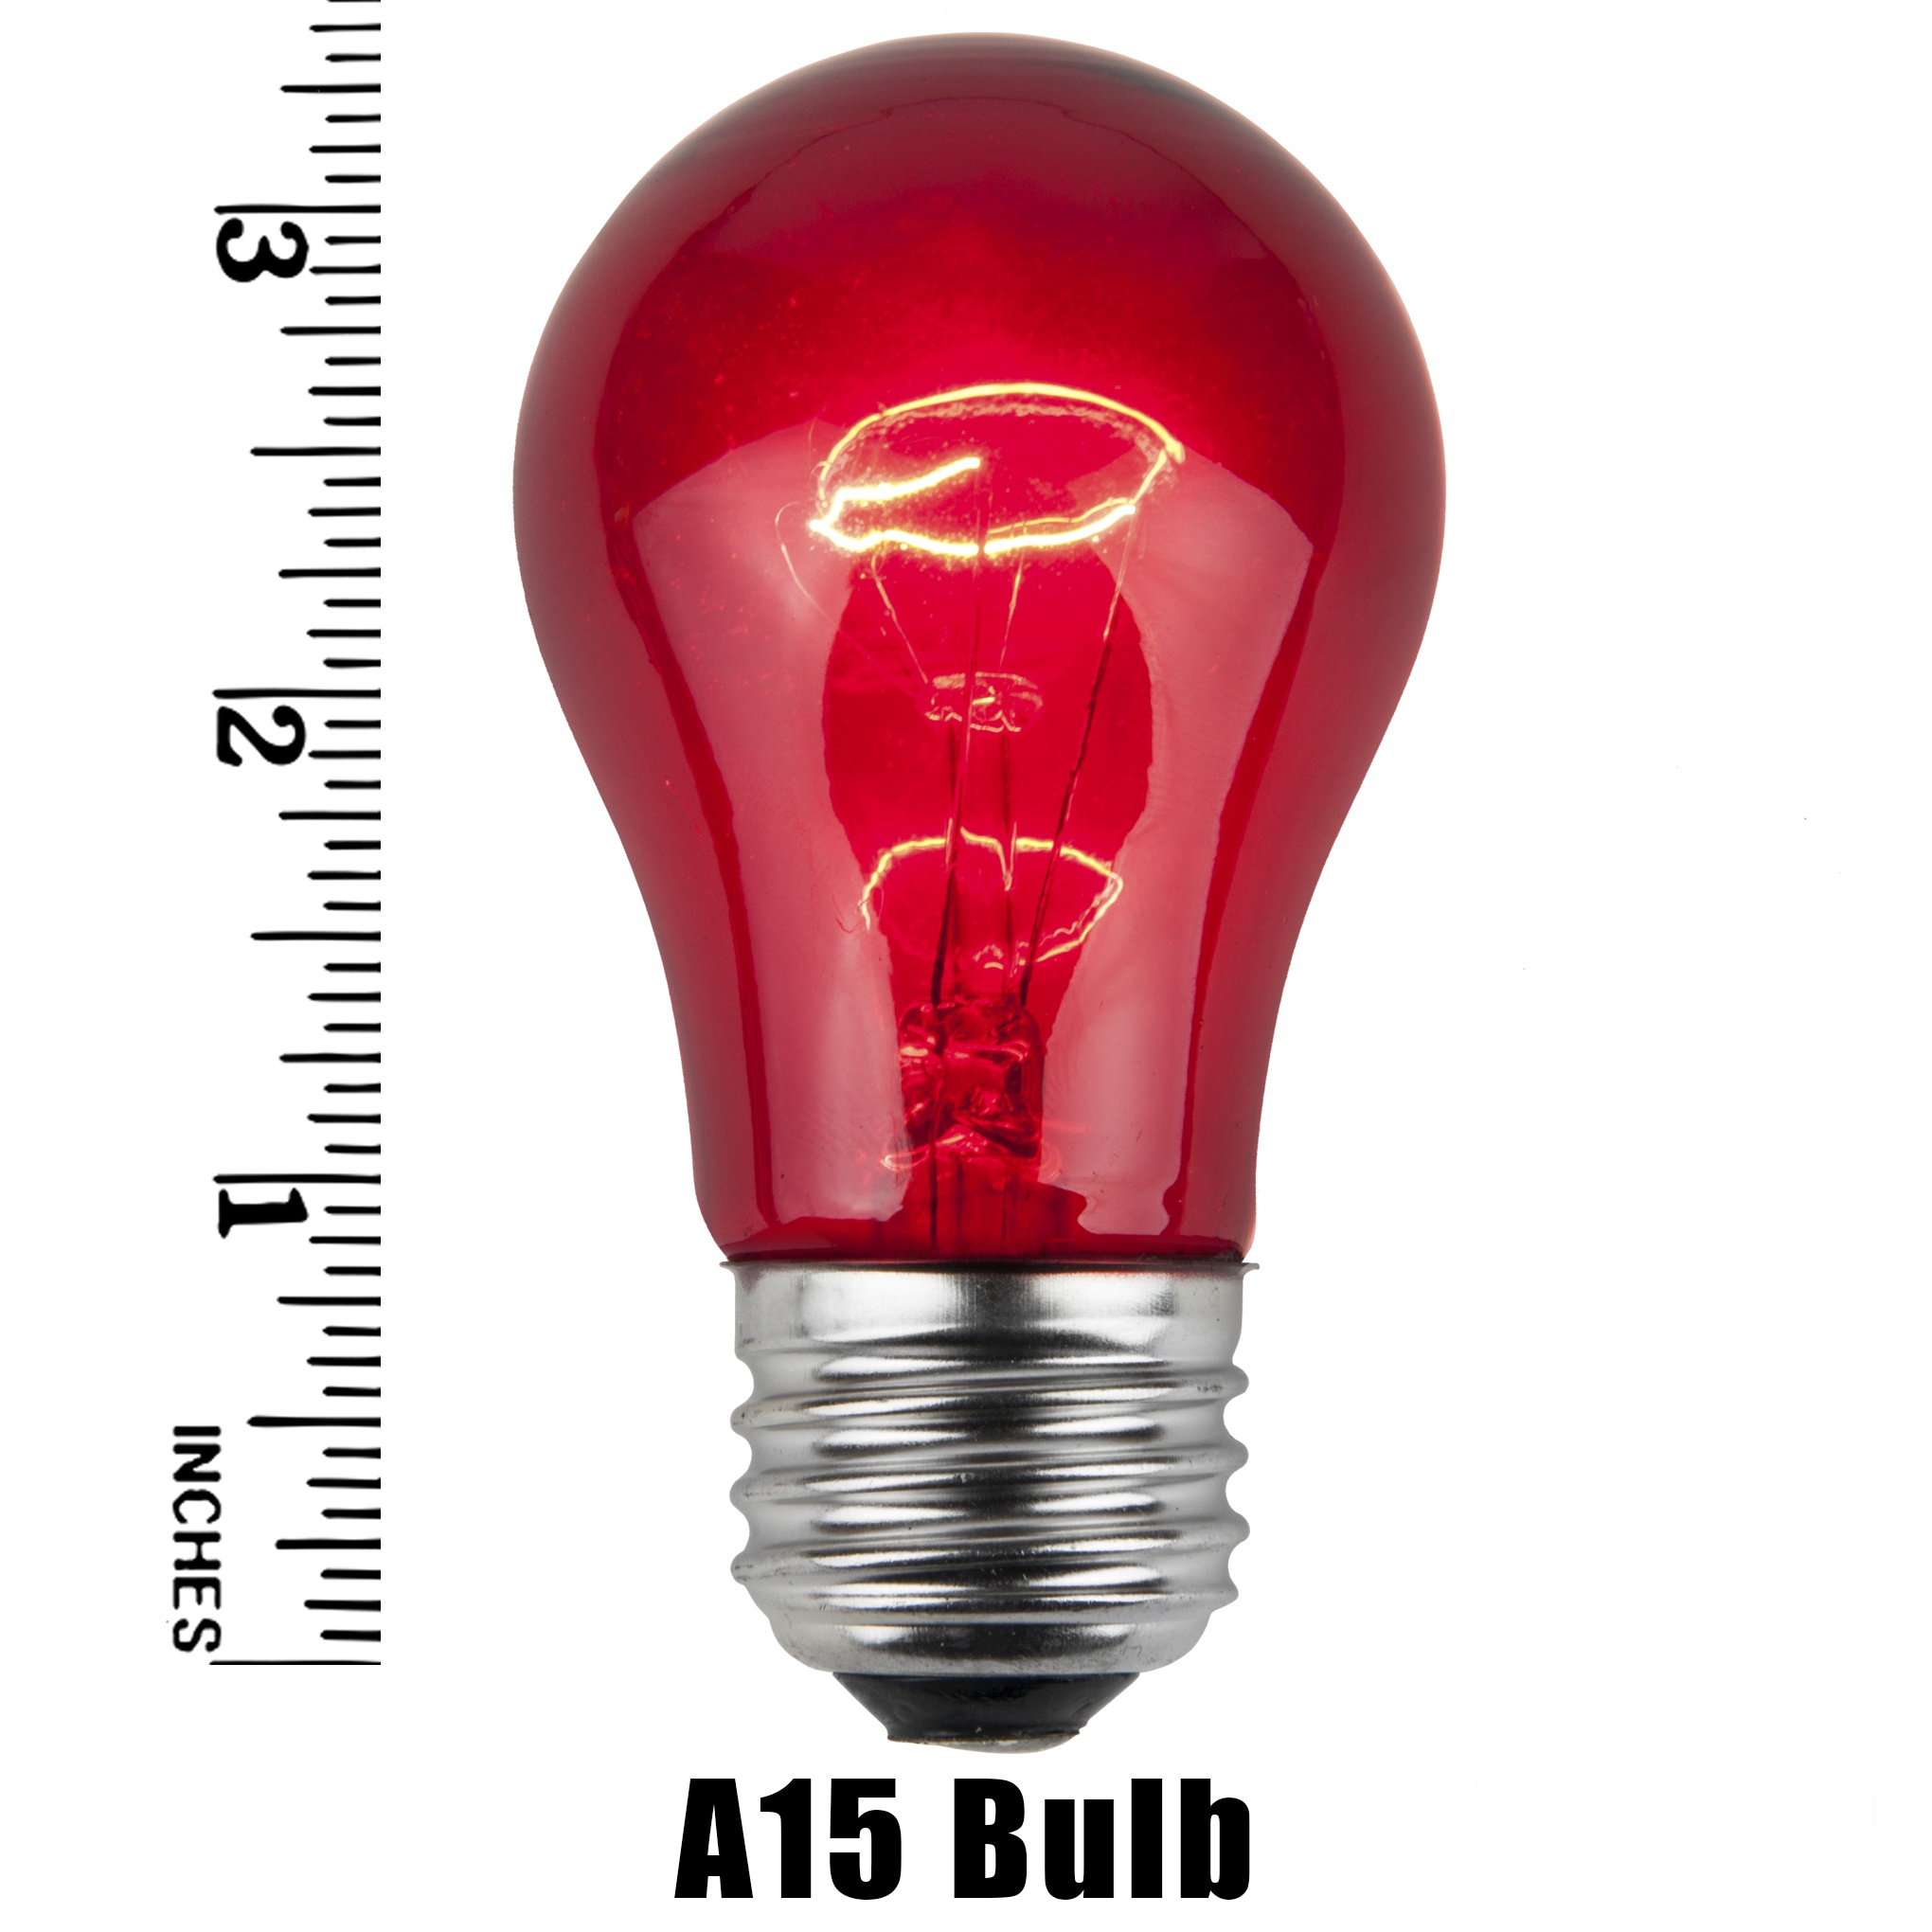 A15 Multicolored Transparent Incandescent Incandescent Bulb Measurement